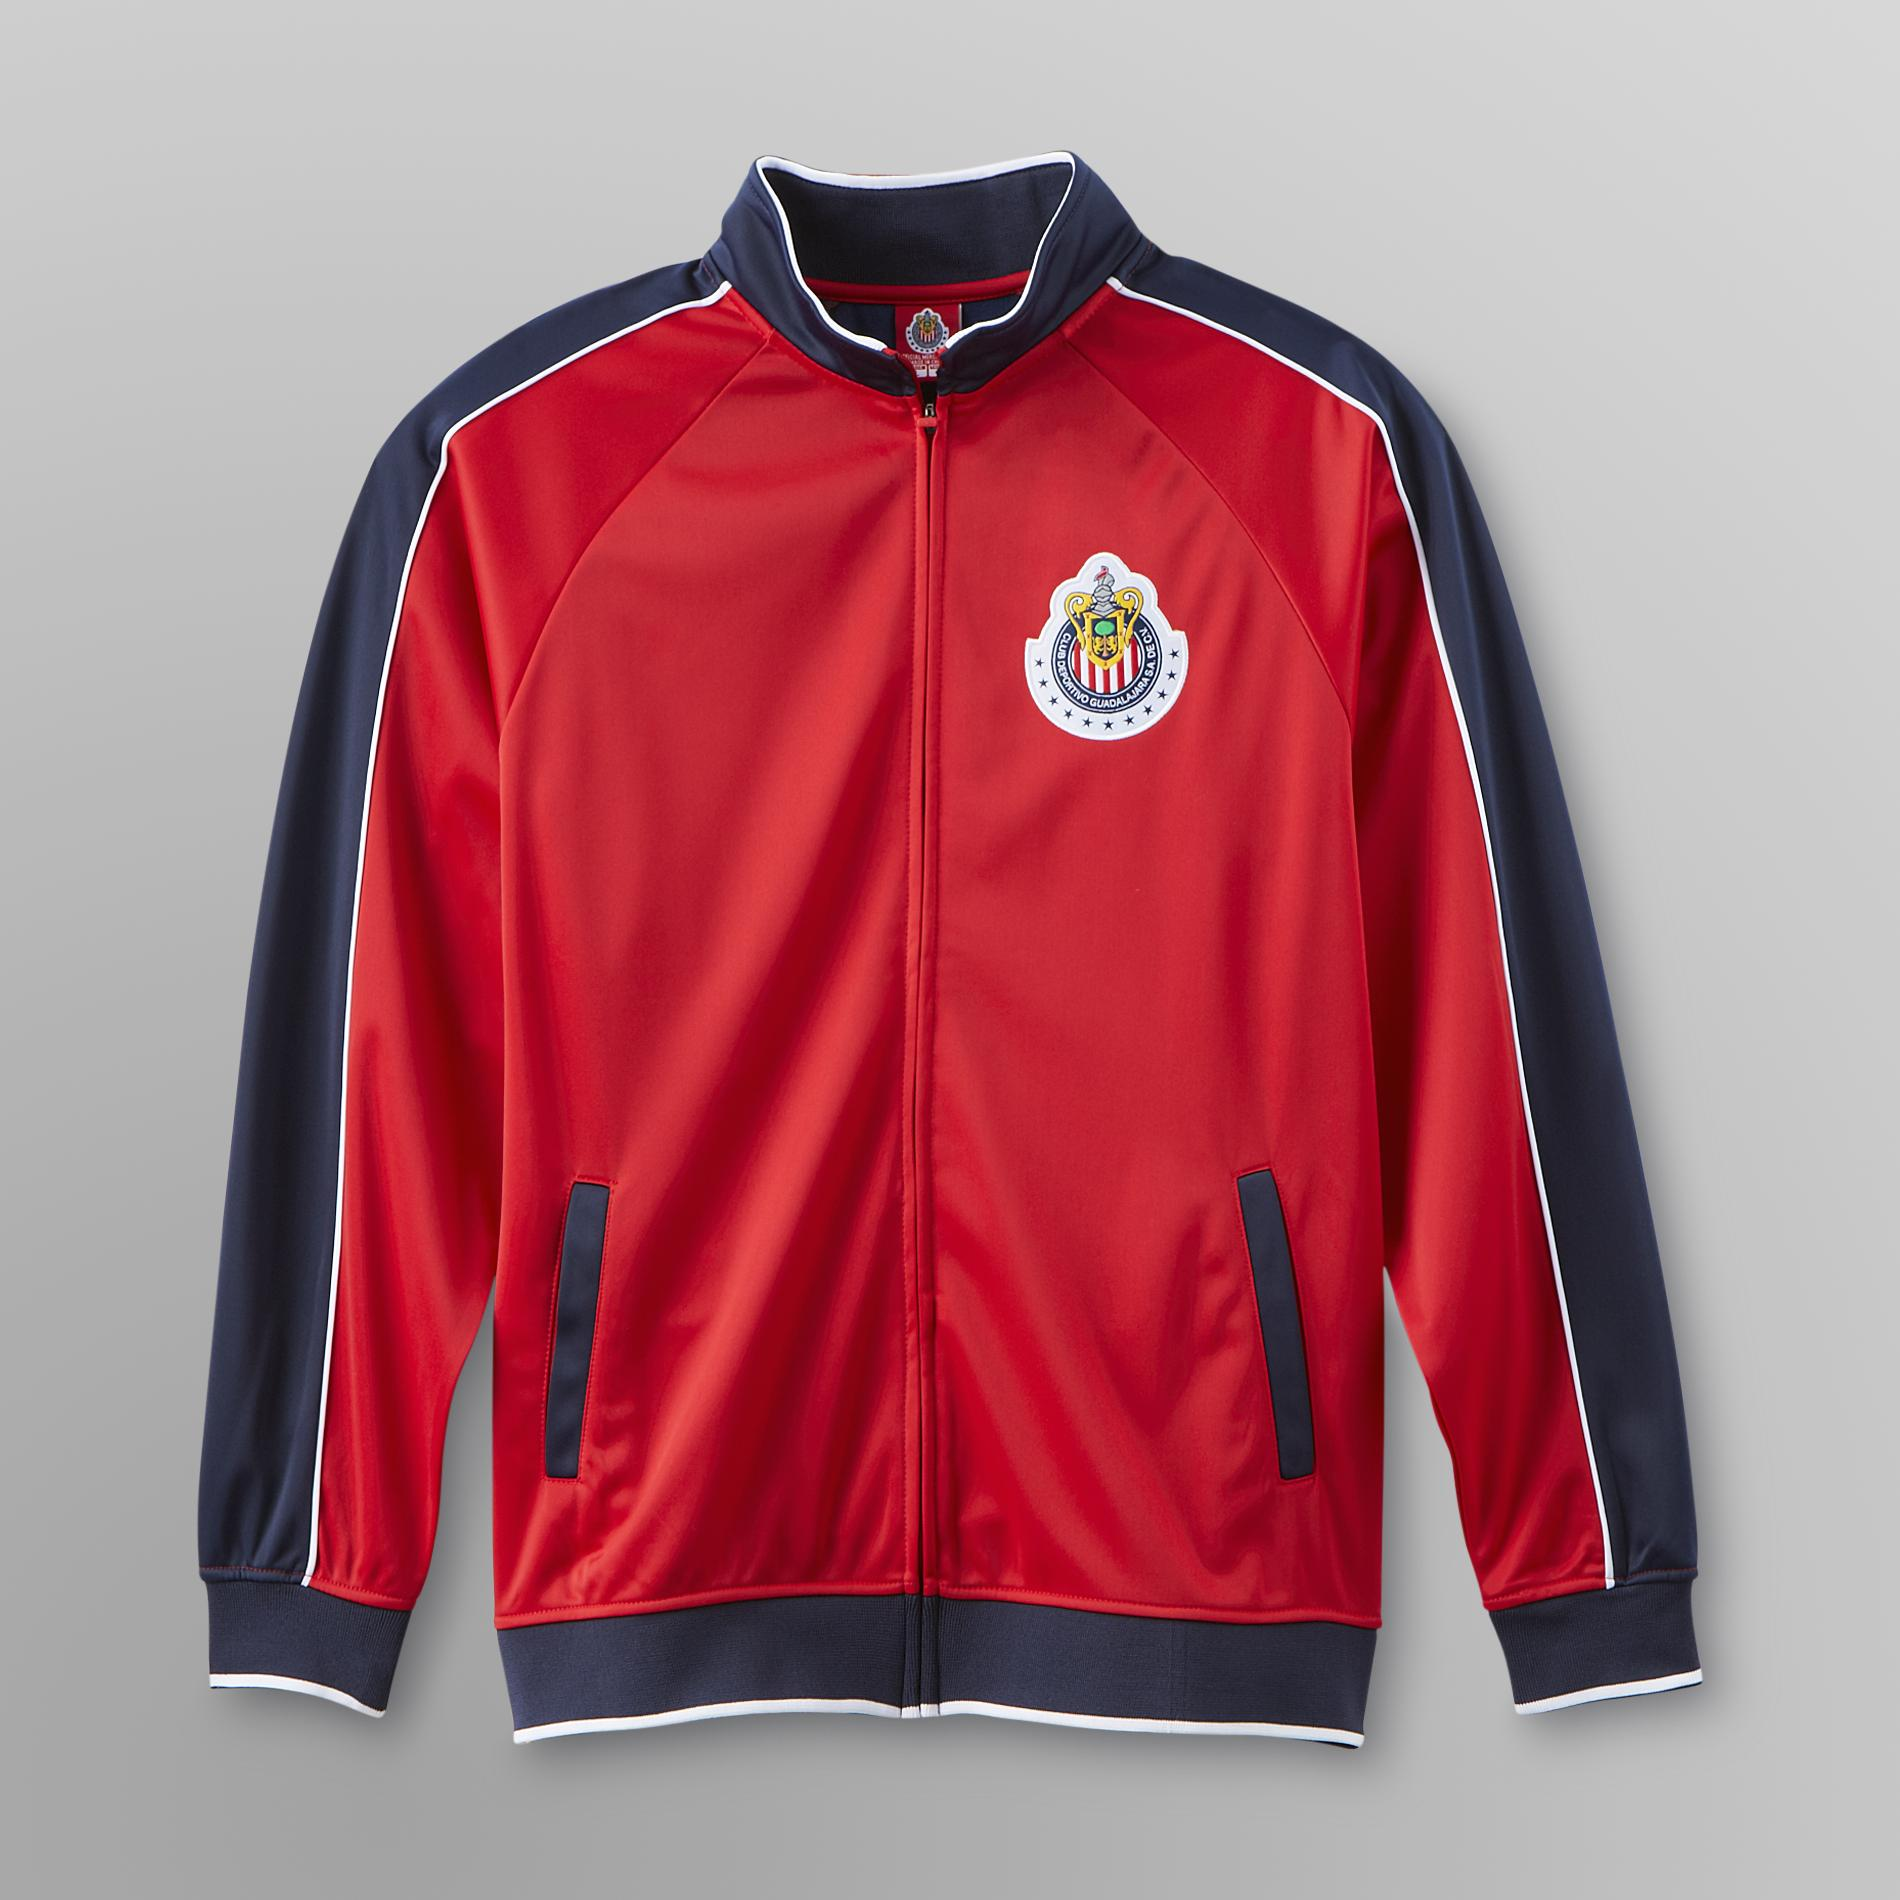 EURO Men's Soccer Jacket - C.D. Guadalajara at Kmart.com